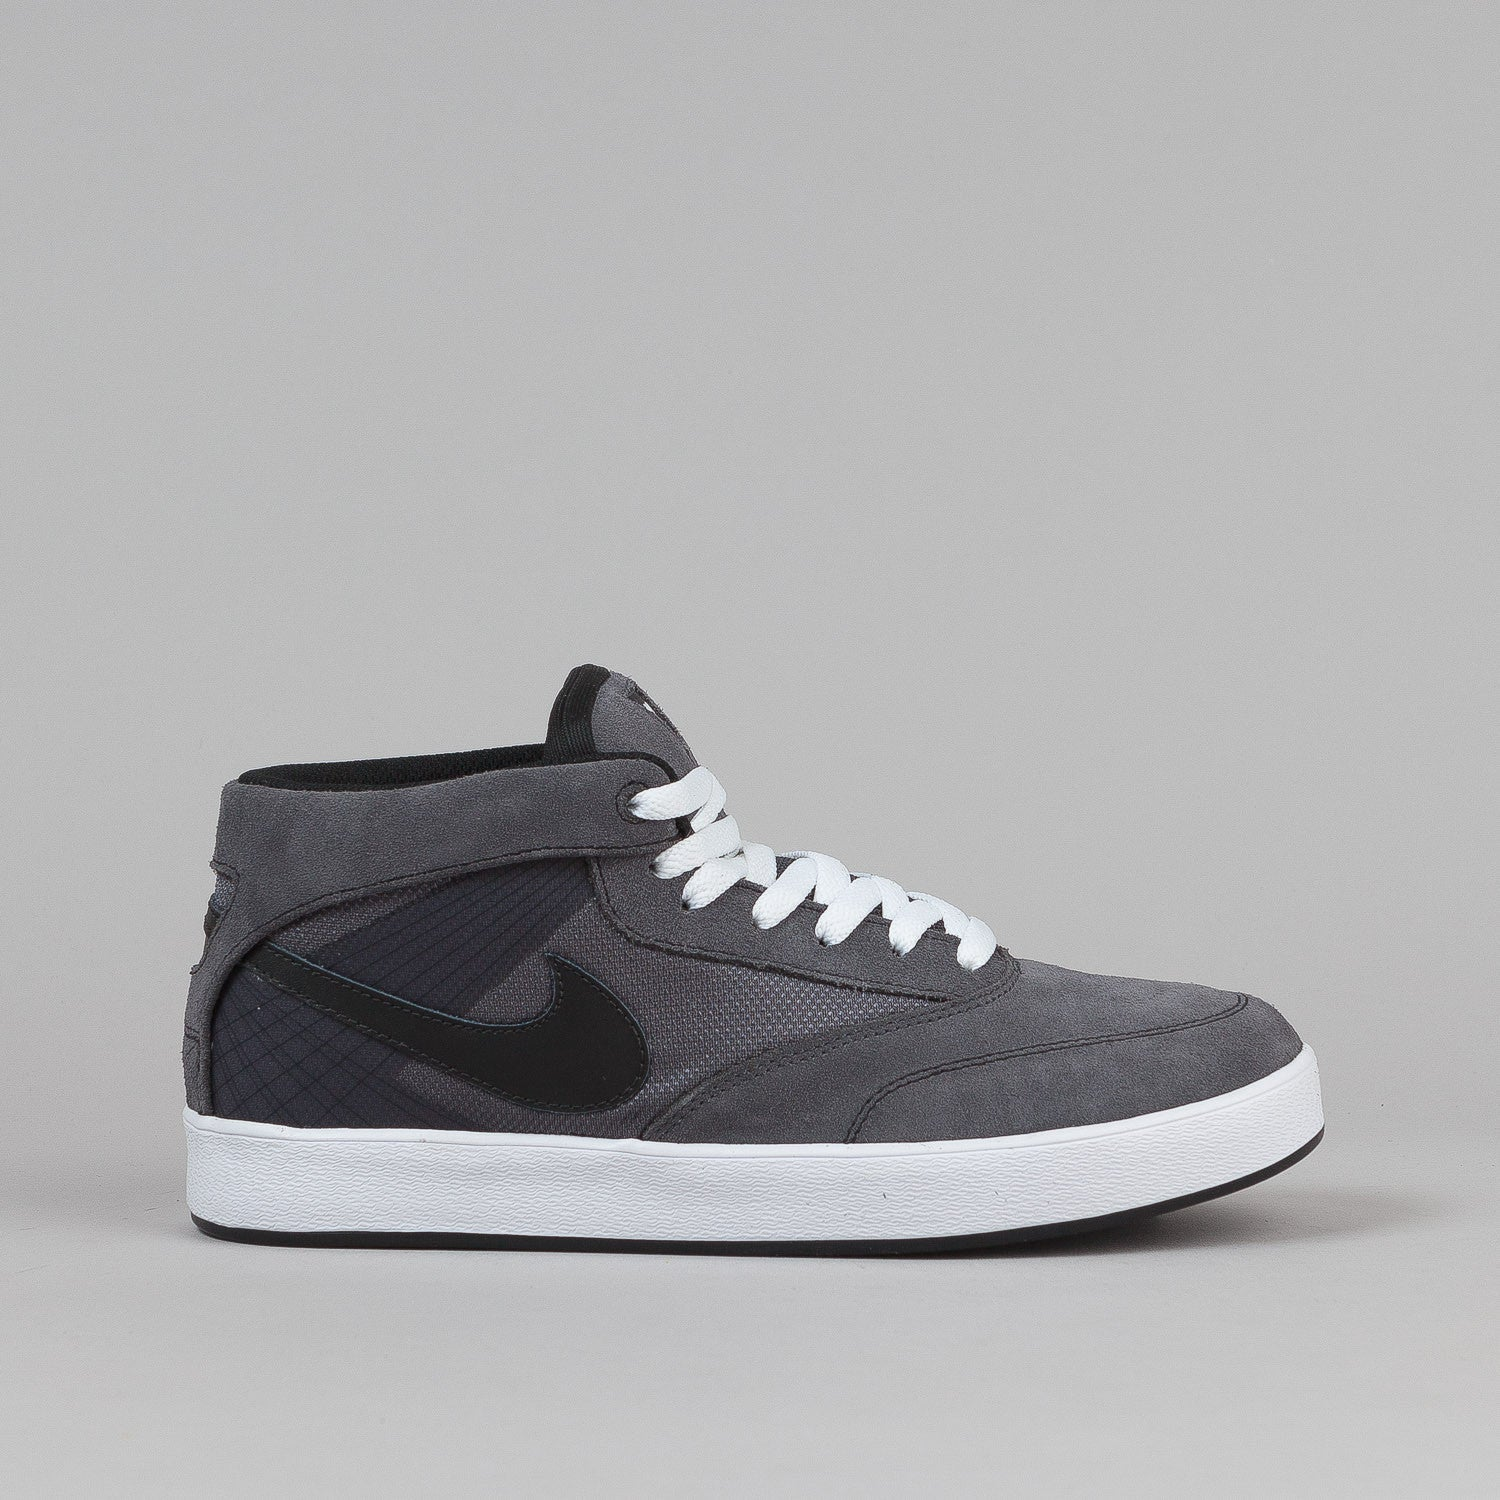 Nike SB Omar Salazar Shoes